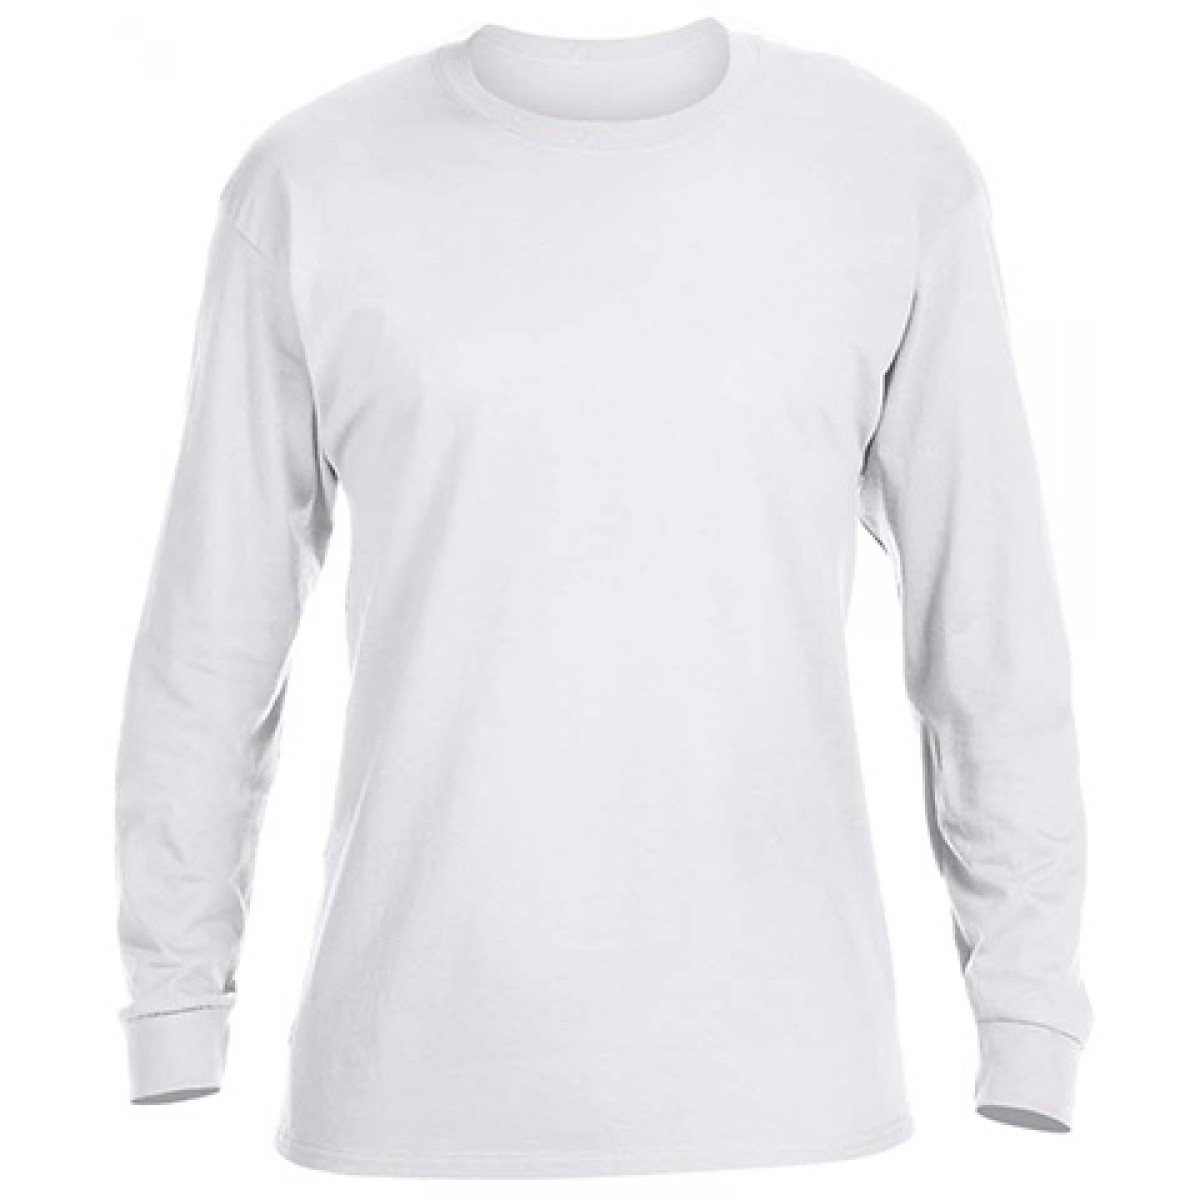 Heavy Cotton Long-Sleeve Adidas Shirt-White-YM